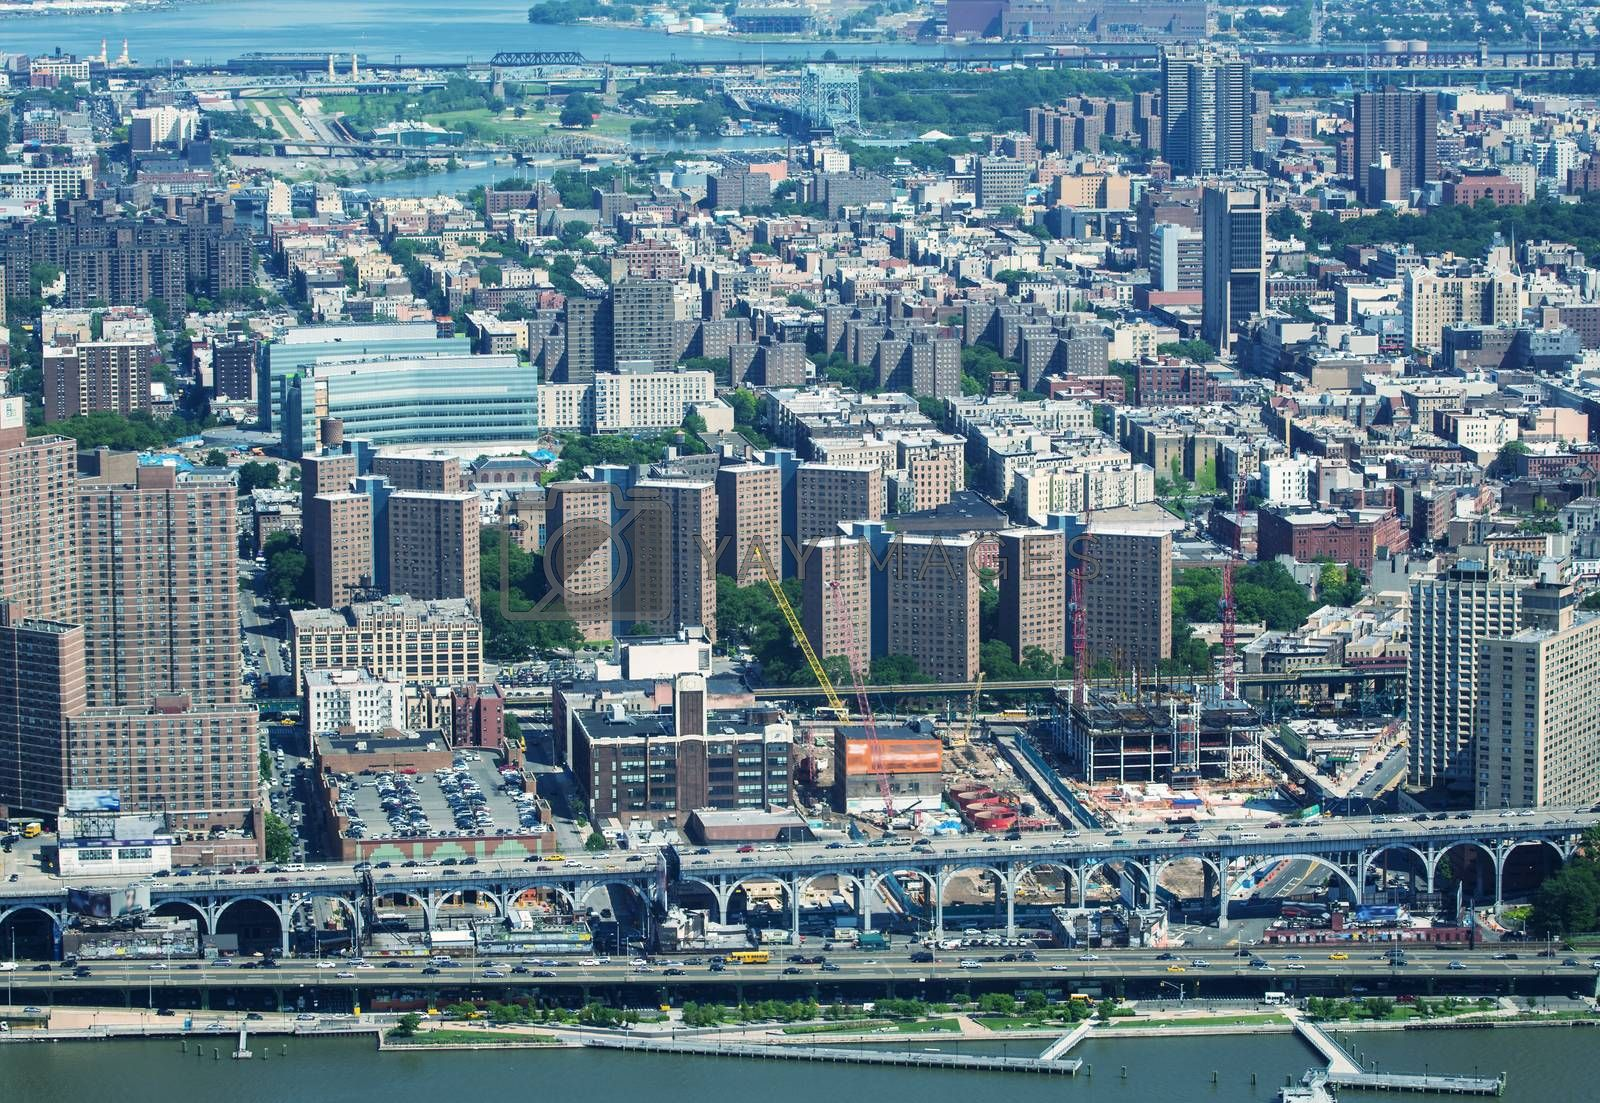 Manhattan west side. Aerial view from helicopter.